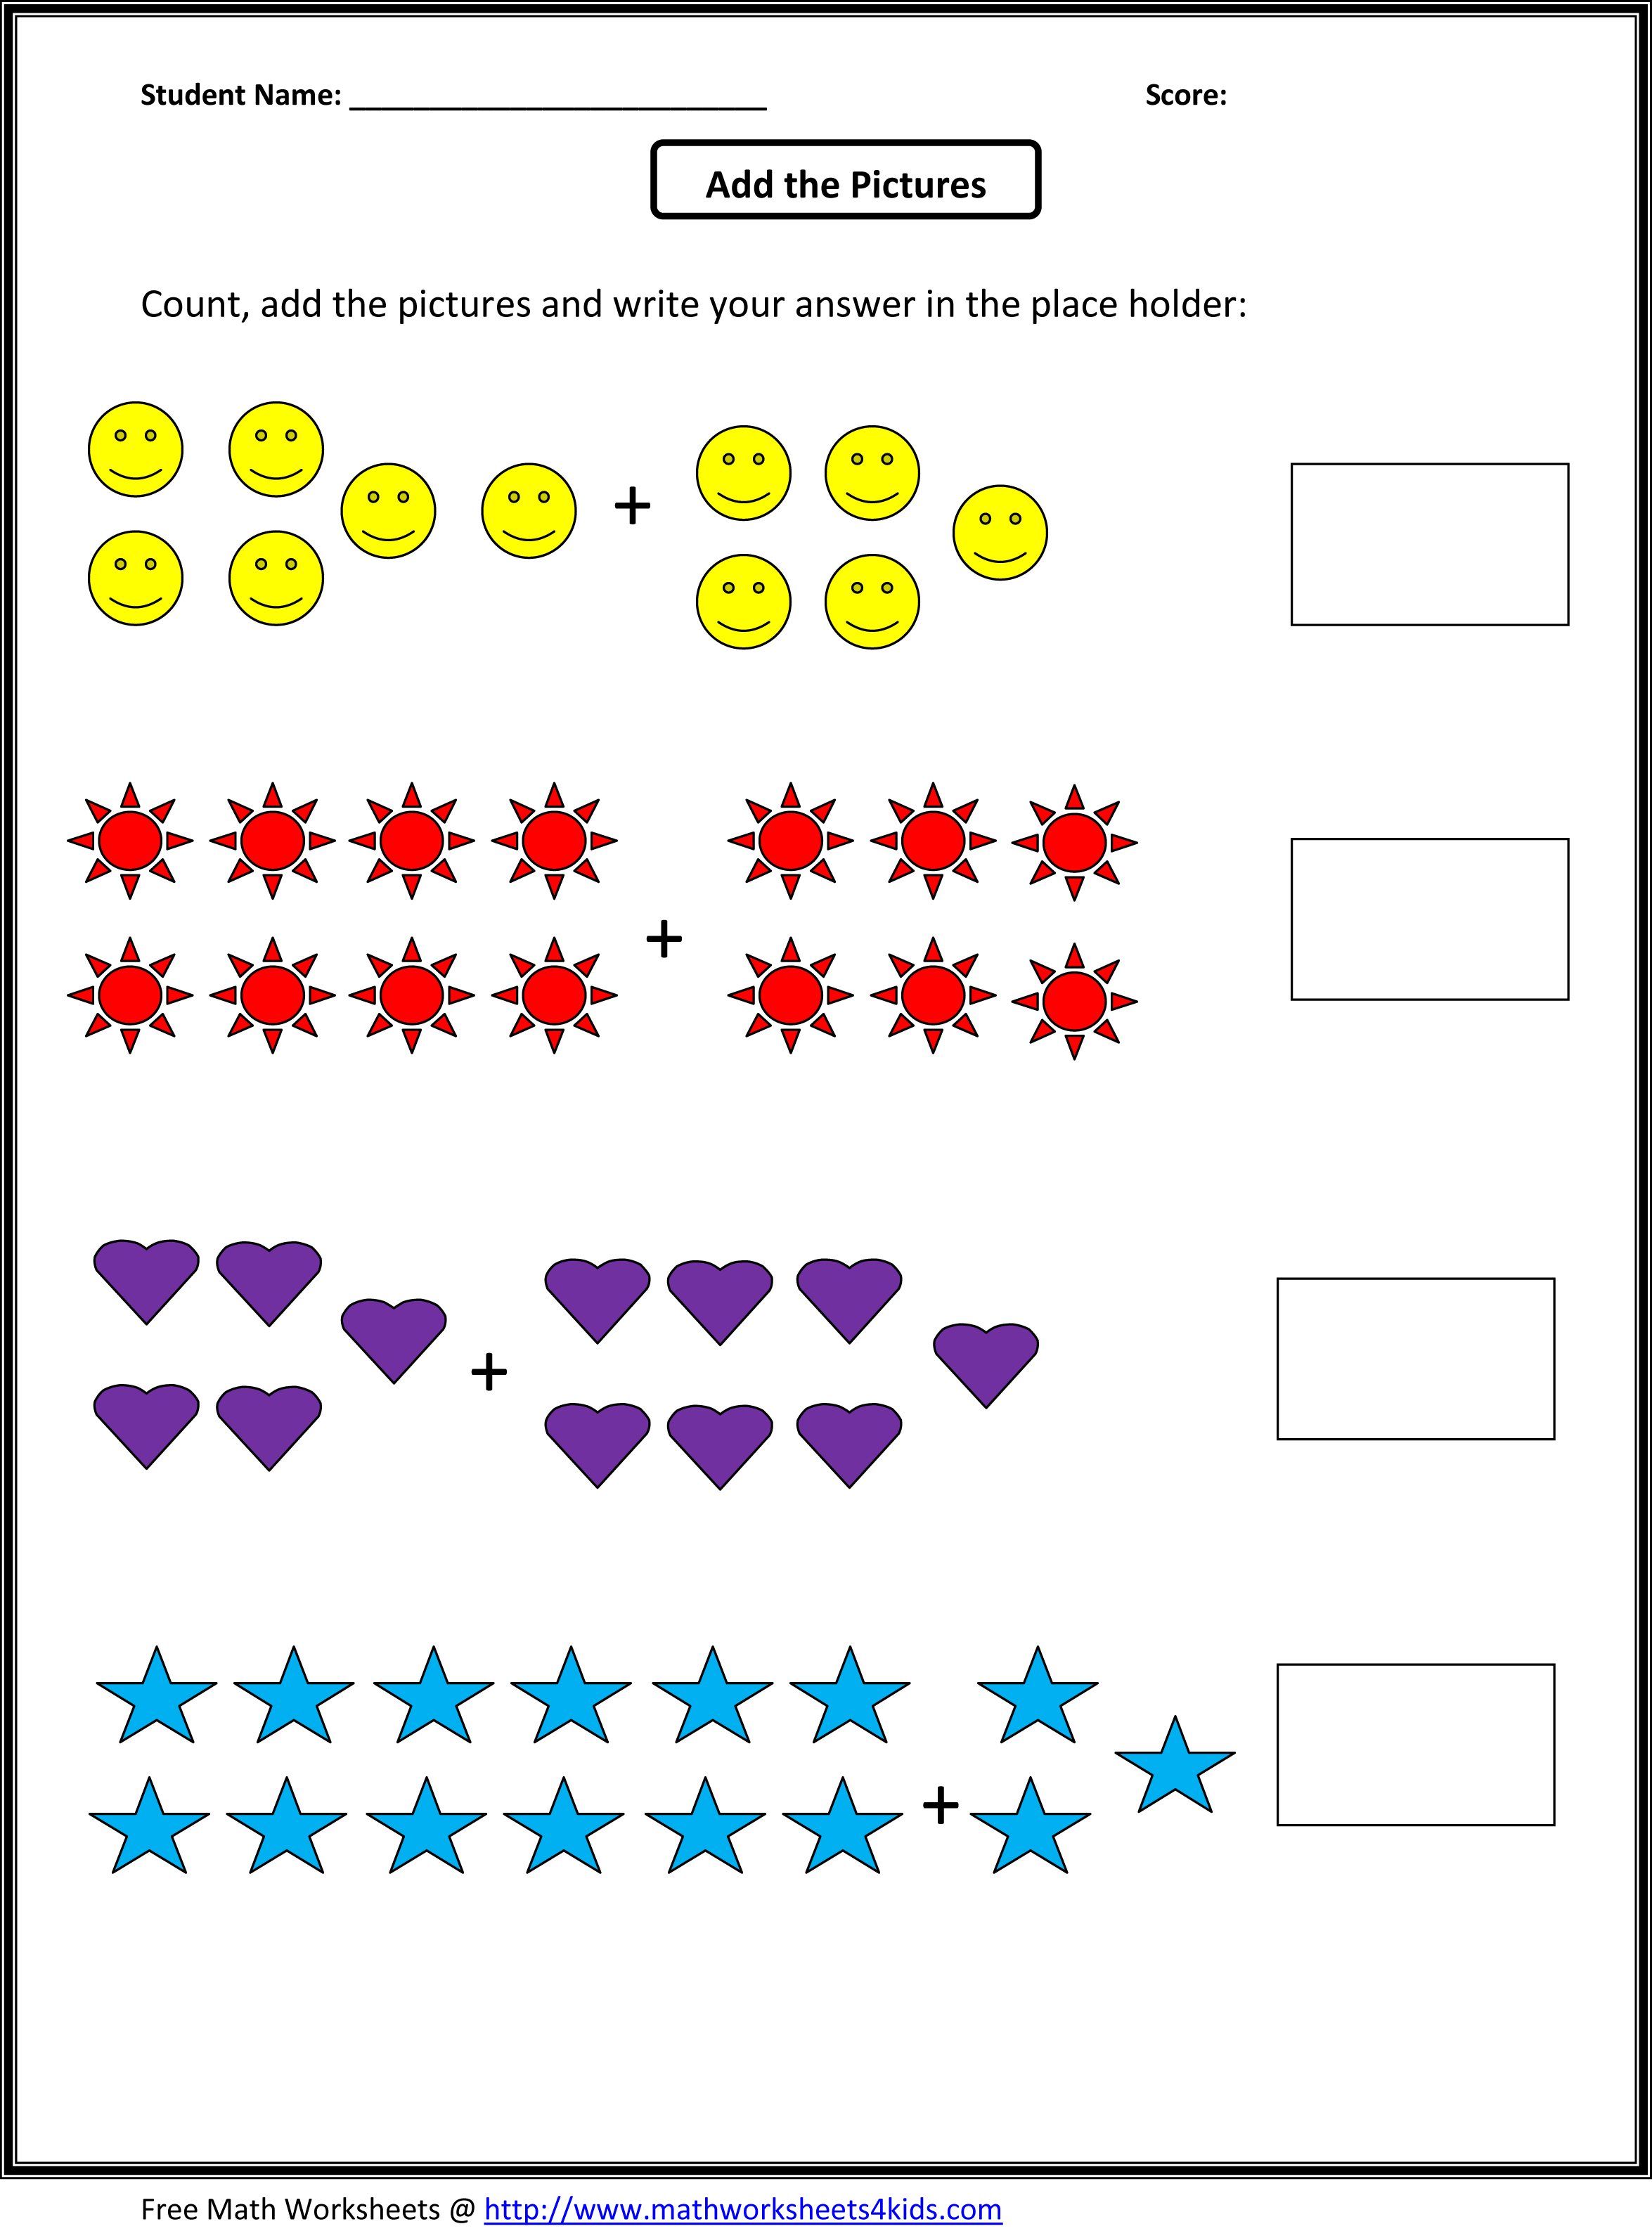 Weirdmailus  Pleasing Grade  Maths Worksheet  Reocurent With Hot Math Worksheets For St Grade Free  Reocurent With Delightful Main Idea And Supporting Details Worksheet Also Abiotic Vs Biotic Factors Worksheet Answers In Addition Decimals Worksheets And Free Second Grade Math Worksheets As Well As Free Writing Worksheets Additionally Affect Vs Effect Worksheet From Reocurentcom With Weirdmailus  Hot Grade  Maths Worksheet  Reocurent With Delightful Math Worksheets For St Grade Free  Reocurent And Pleasing Main Idea And Supporting Details Worksheet Also Abiotic Vs Biotic Factors Worksheet Answers In Addition Decimals Worksheets From Reocurentcom